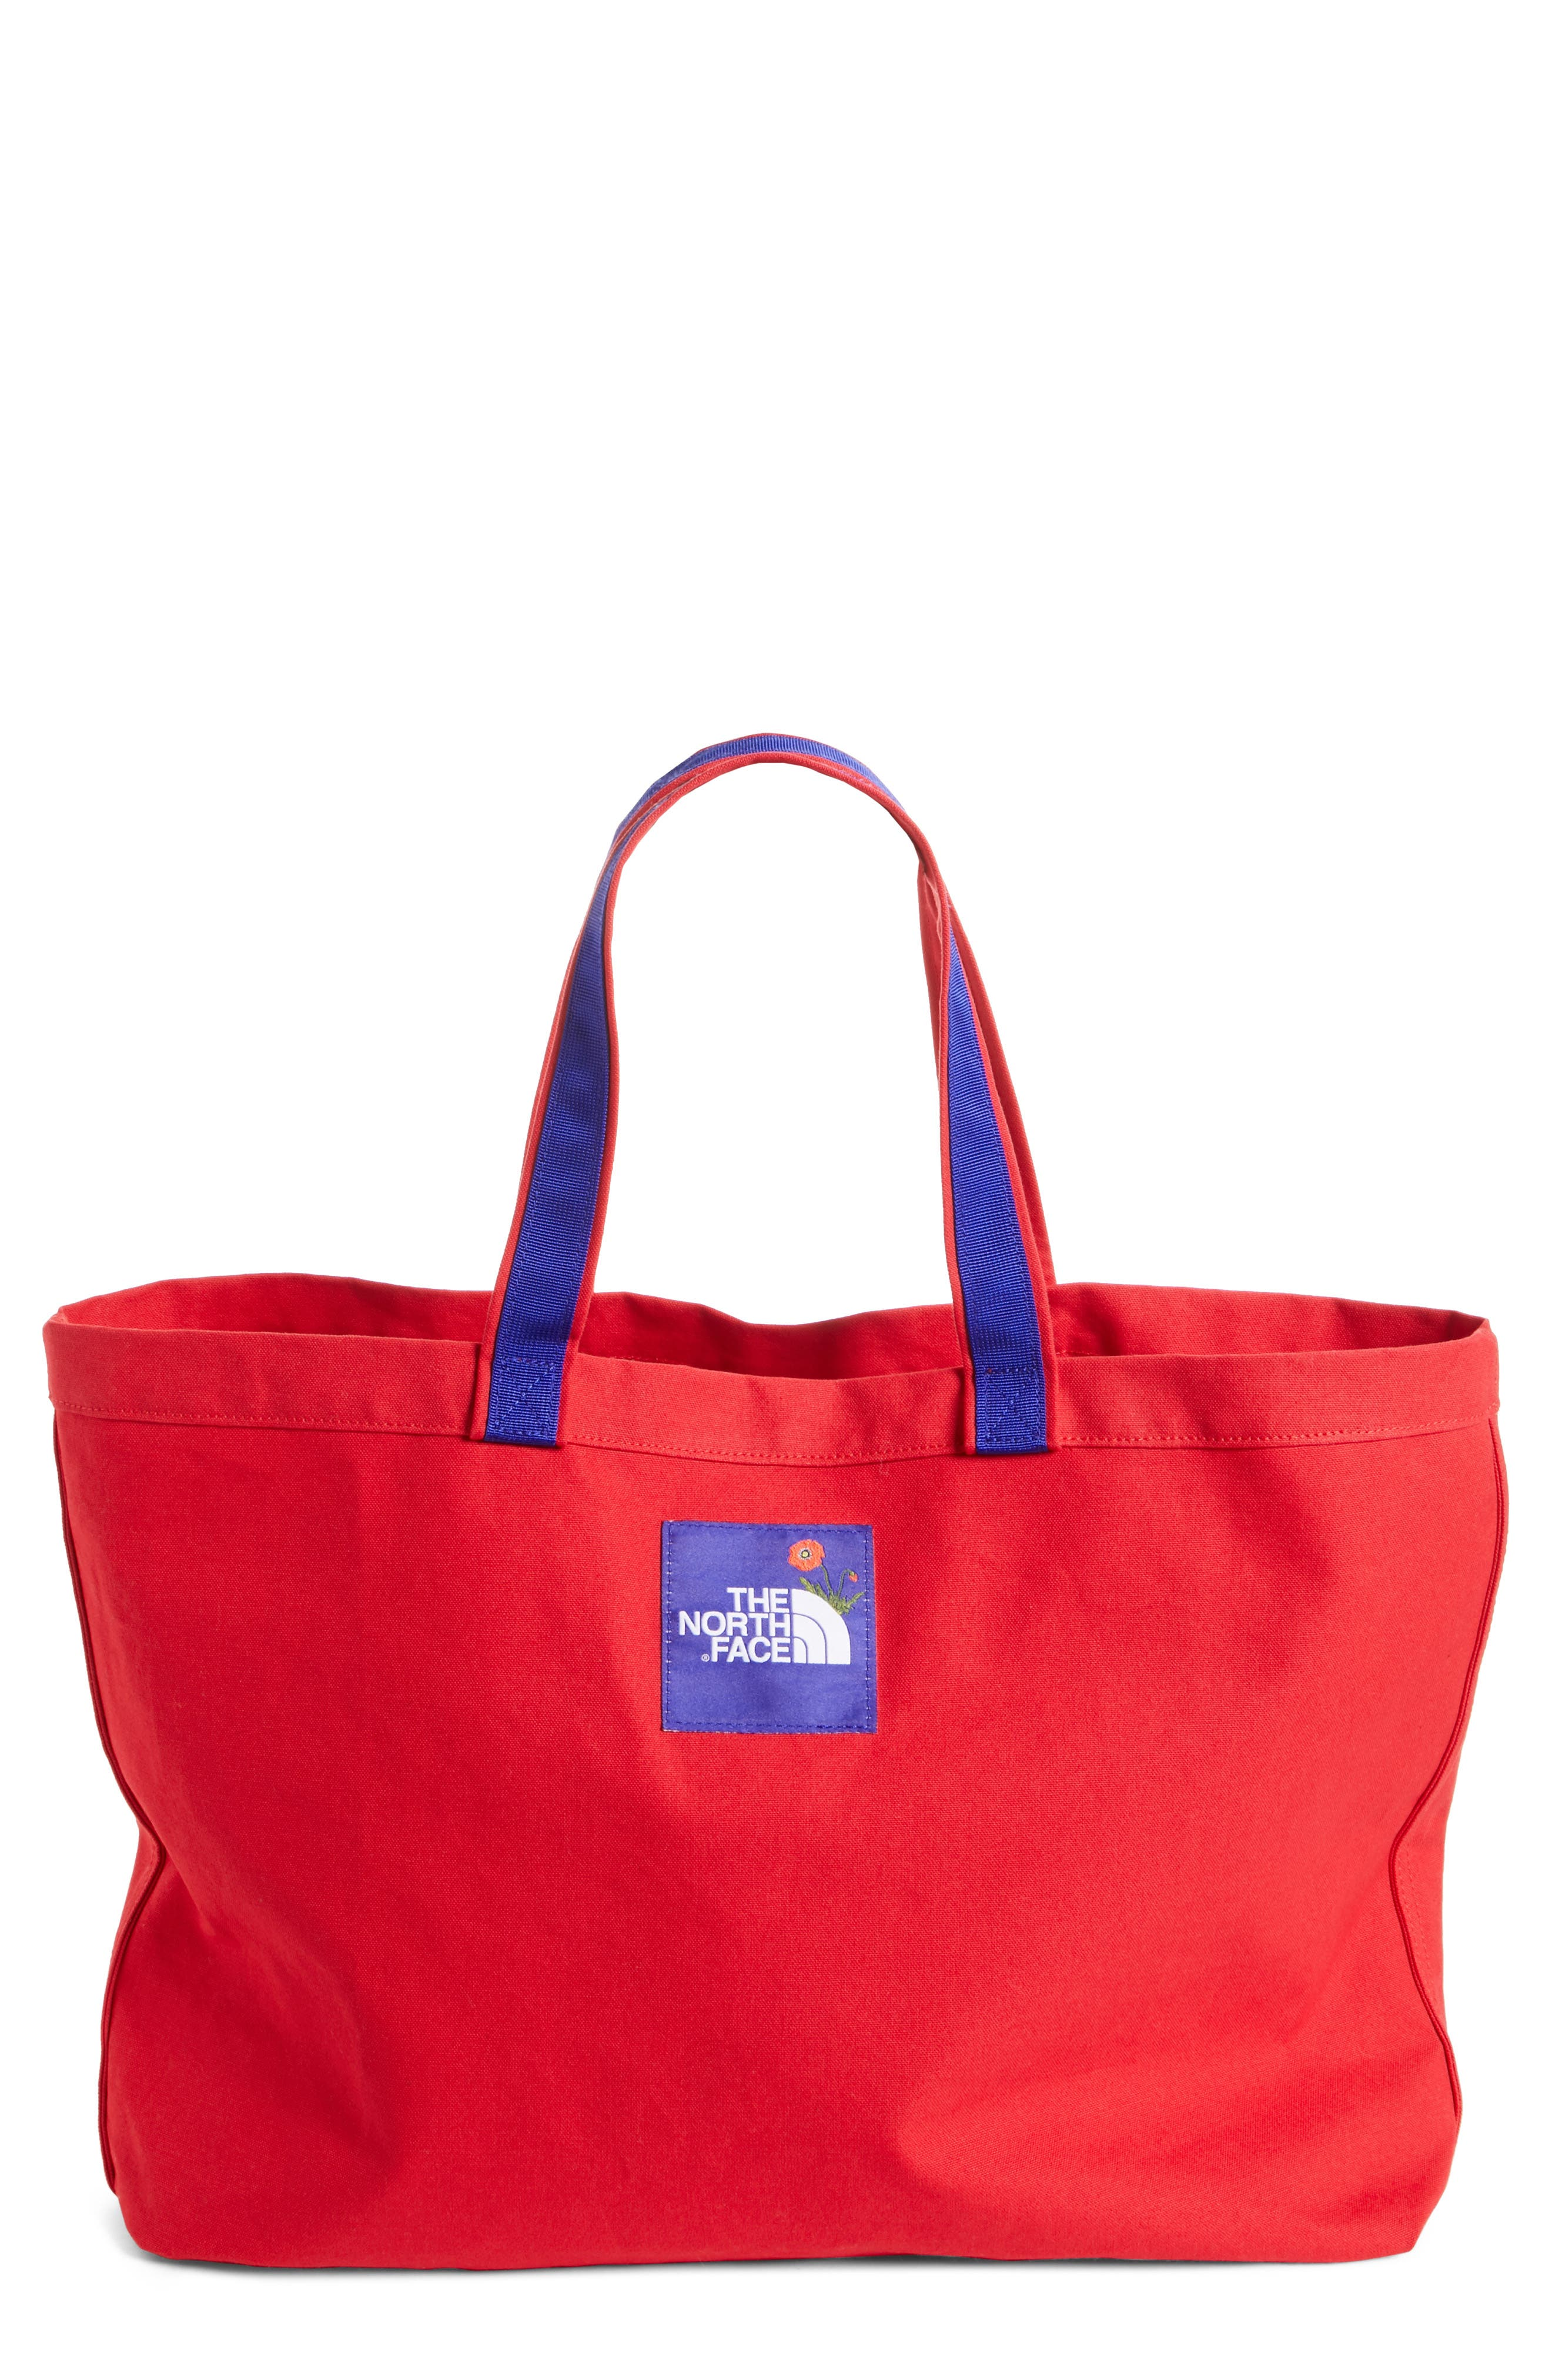 Alternate Image 1 Selected - The North Face Large Tote